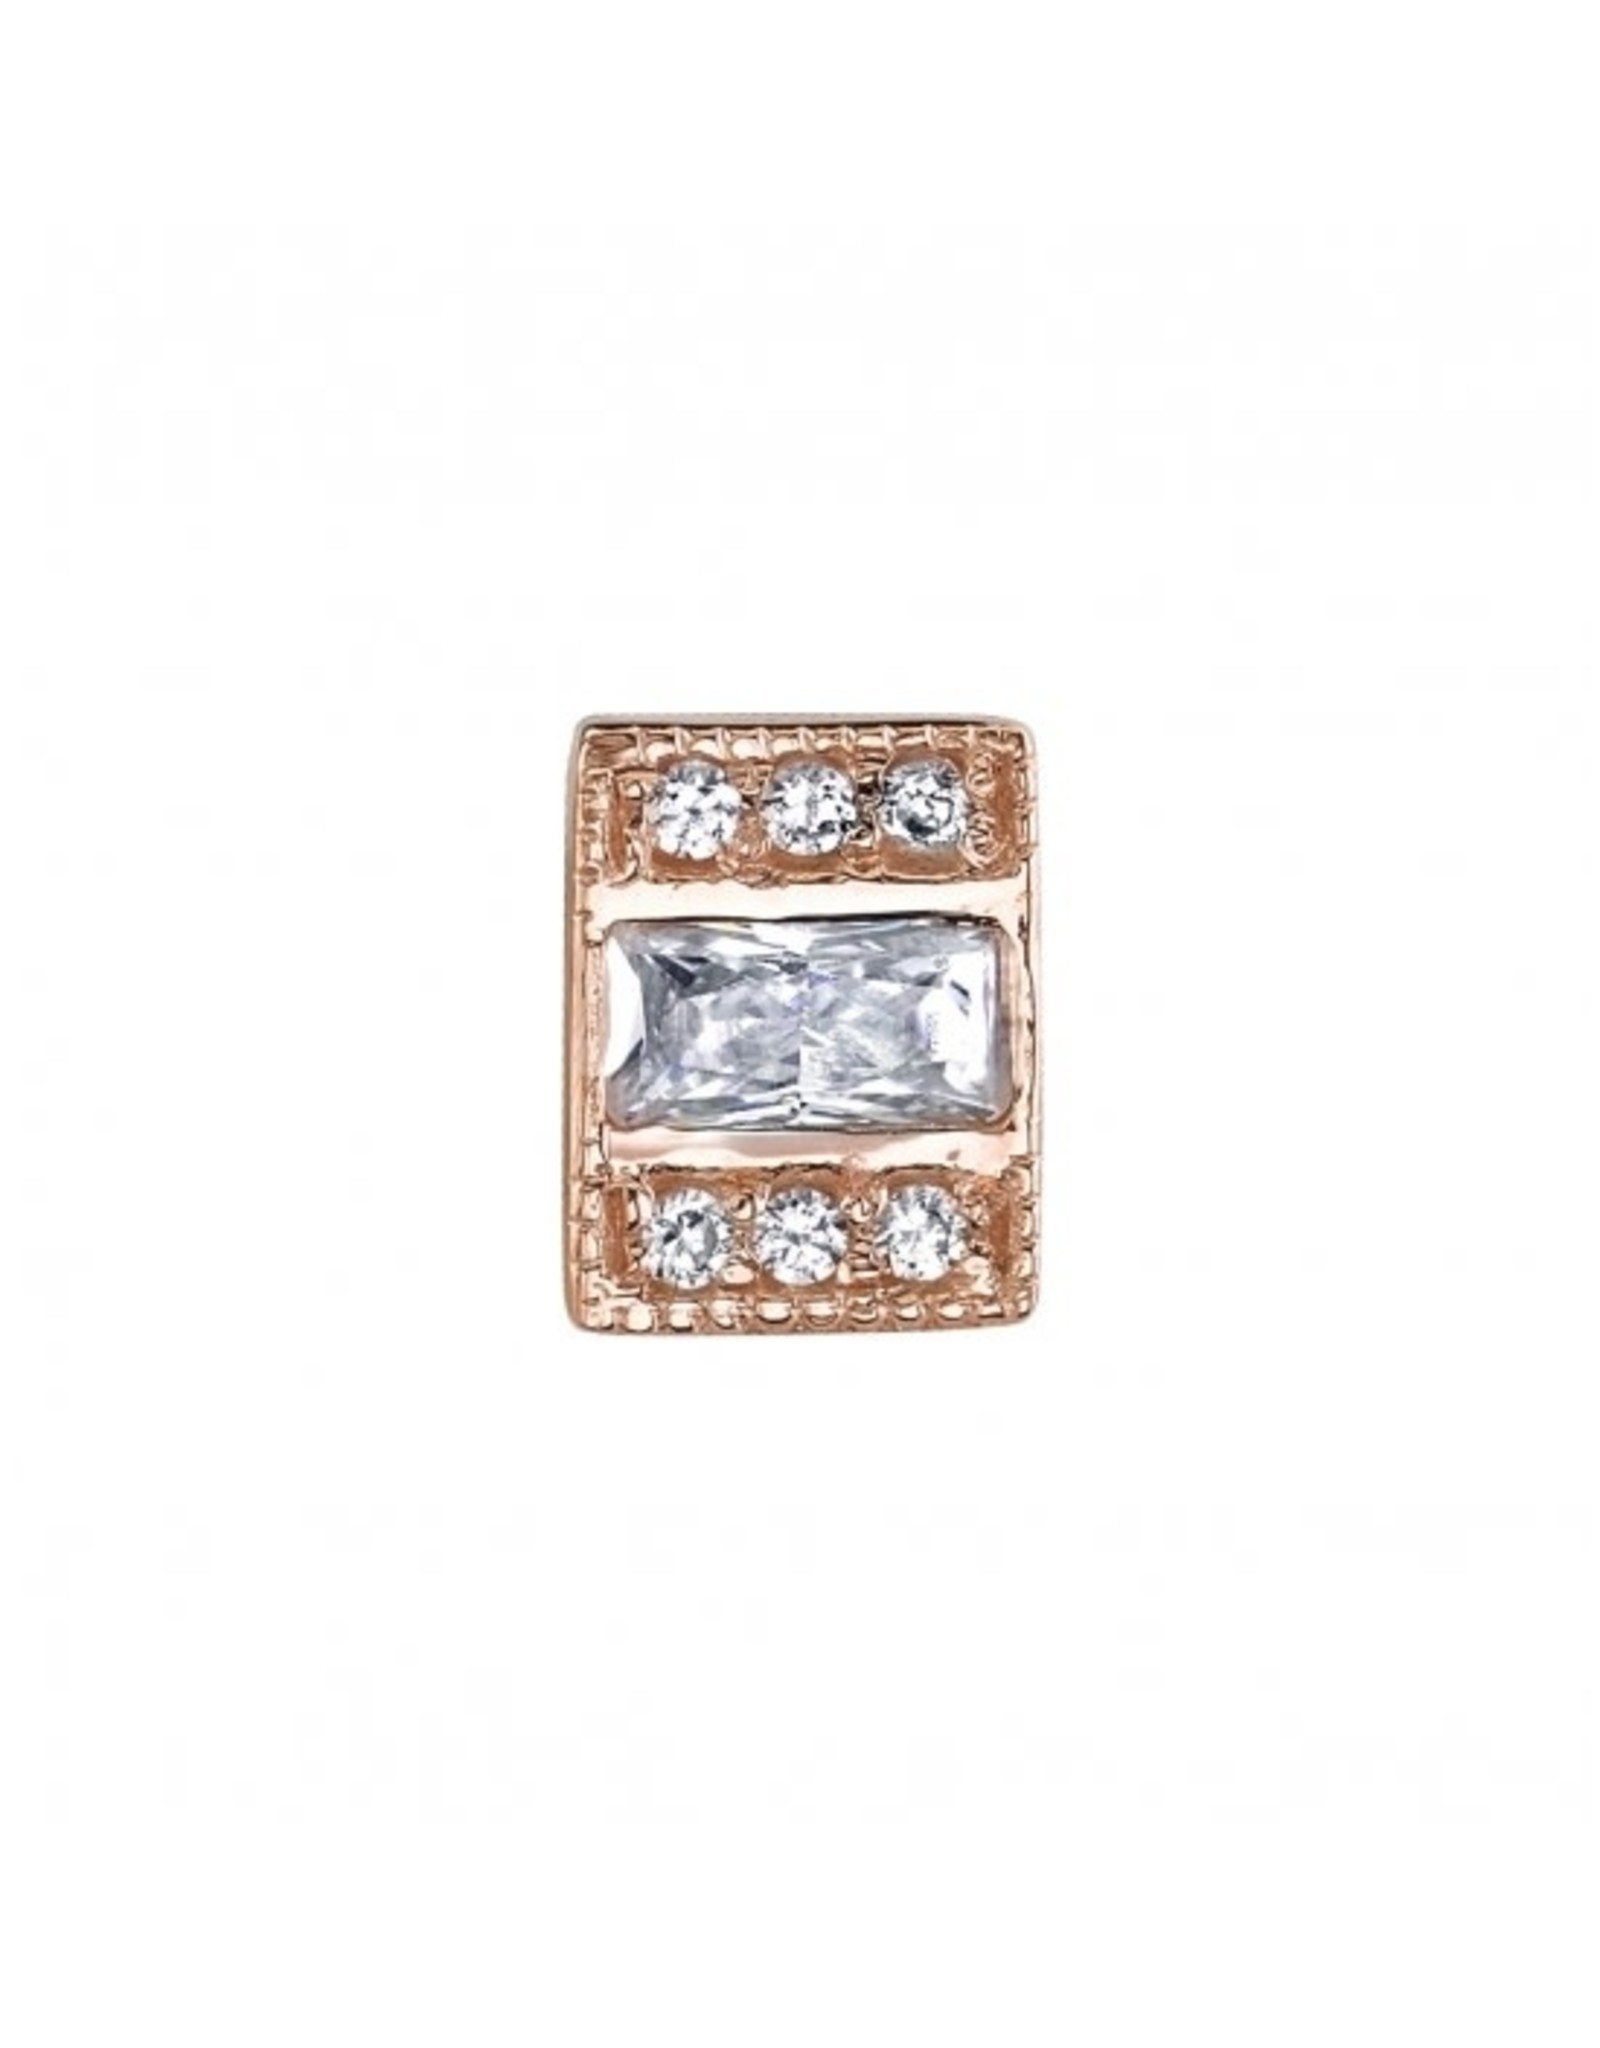 """BVLA BVLA rose gold """"Endymion Rectangle"""" threaded end with 6x 1.0 CZ & 4x2 baguette CZ"""